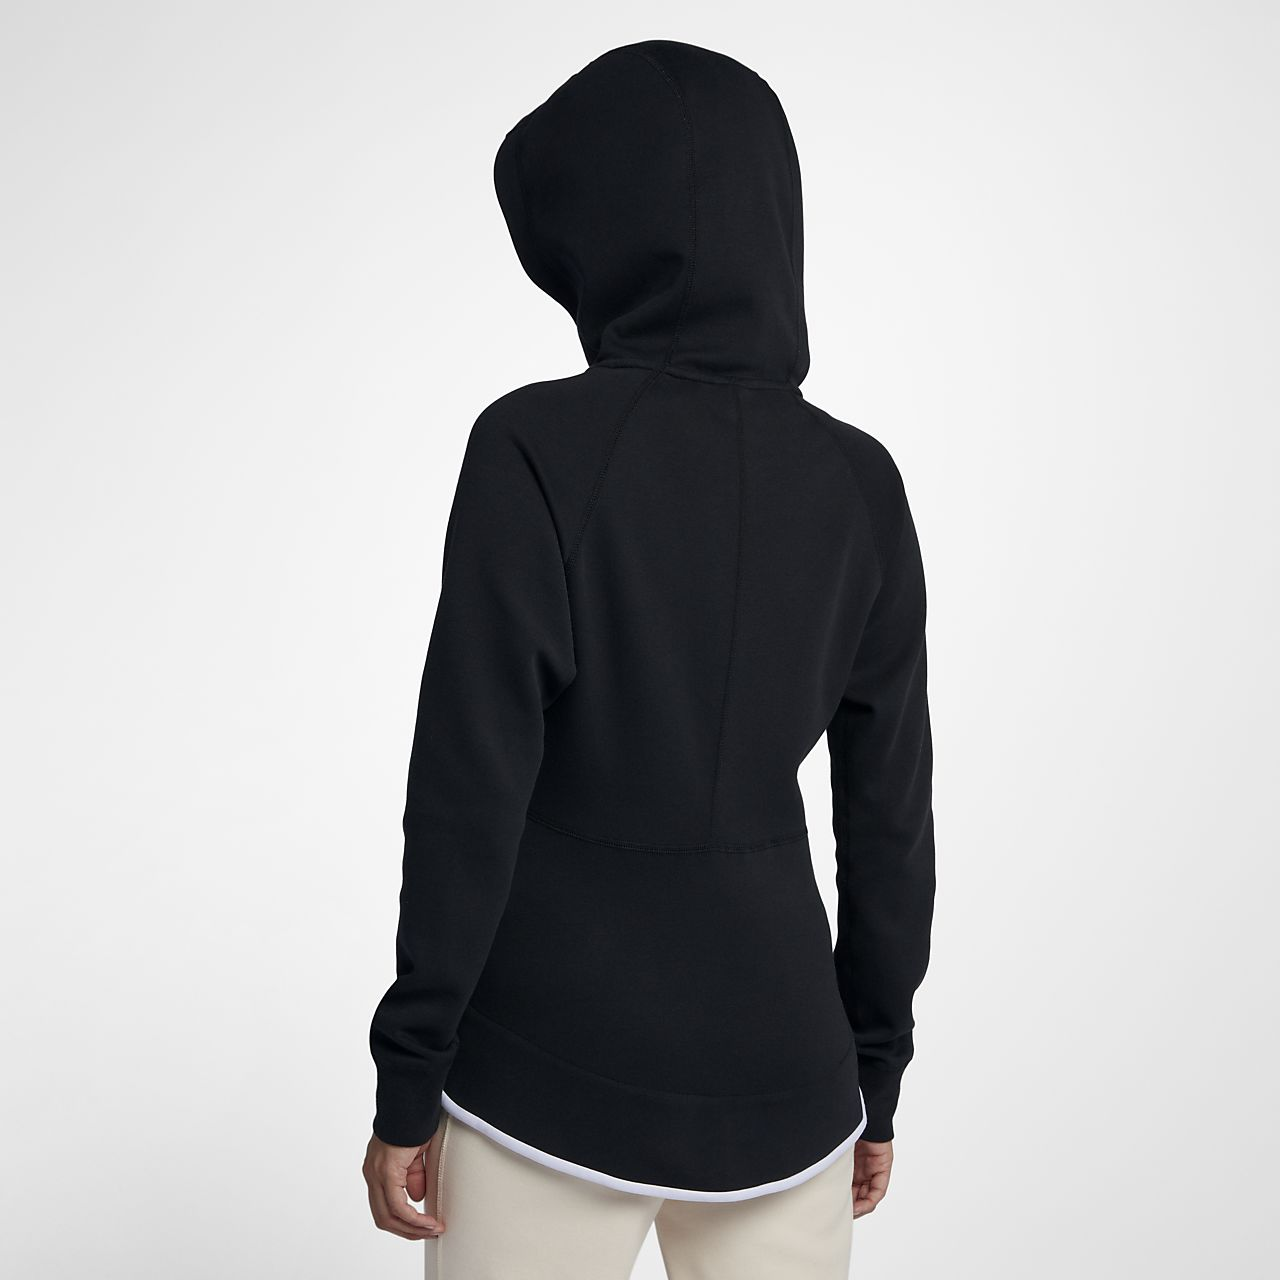 f5b3df263f7c Nike Sportswear Tech Fleece Windrunner Women s Full-Zip Hoodie. Nike.com